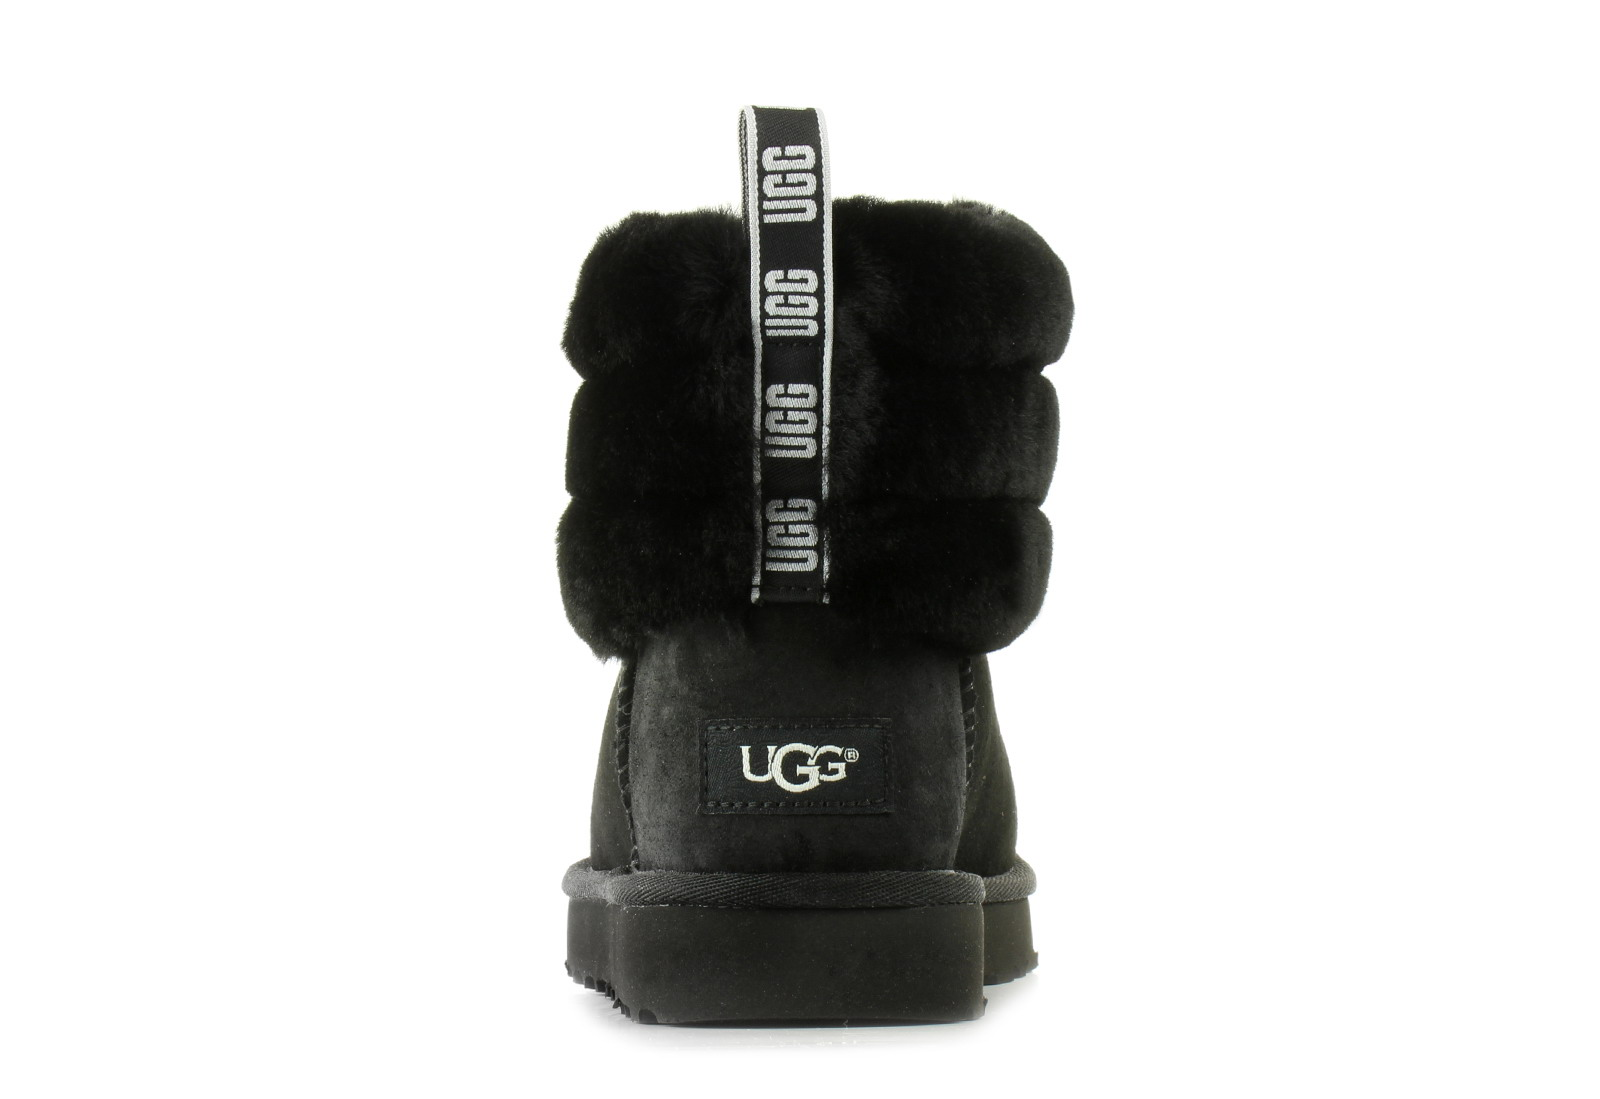 5d58e07de9a Ugg Boots - Fluff Mini Quilted - 1098533-blk - Online shop for sneakers,  shoes and boots